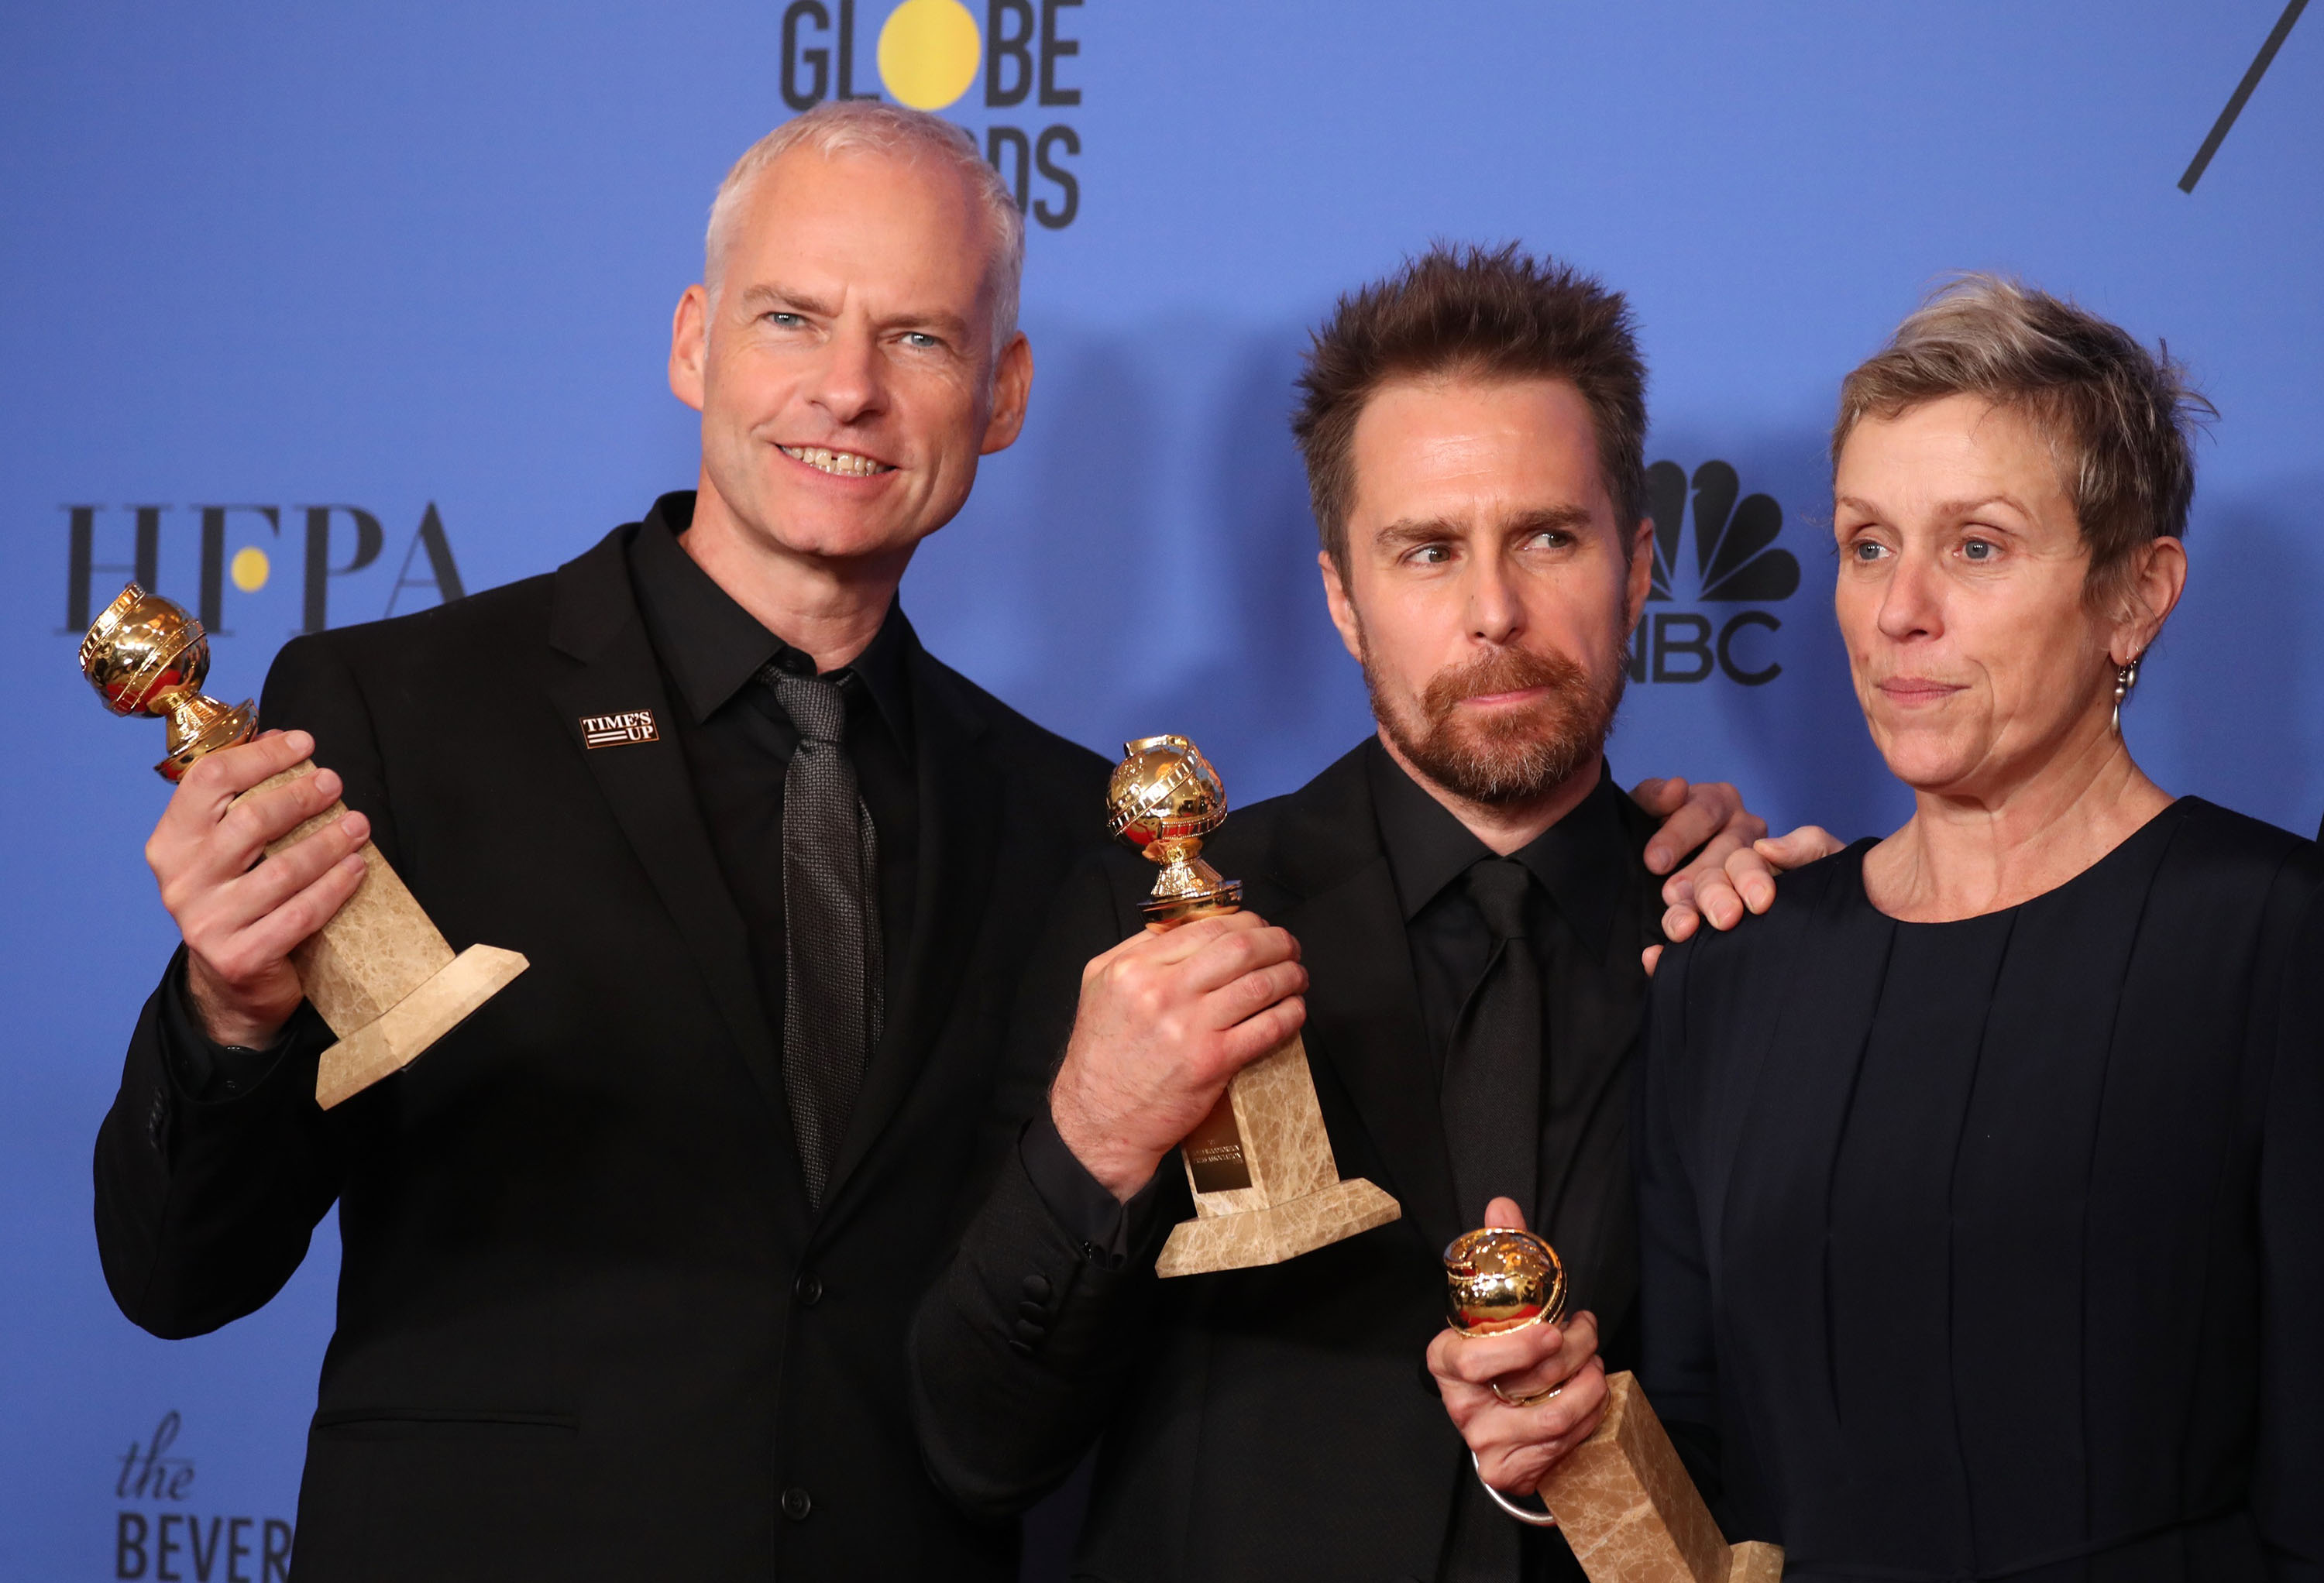 Frances McDormand deserves an Oscar for Martin McDonagh's superb Three Billboards